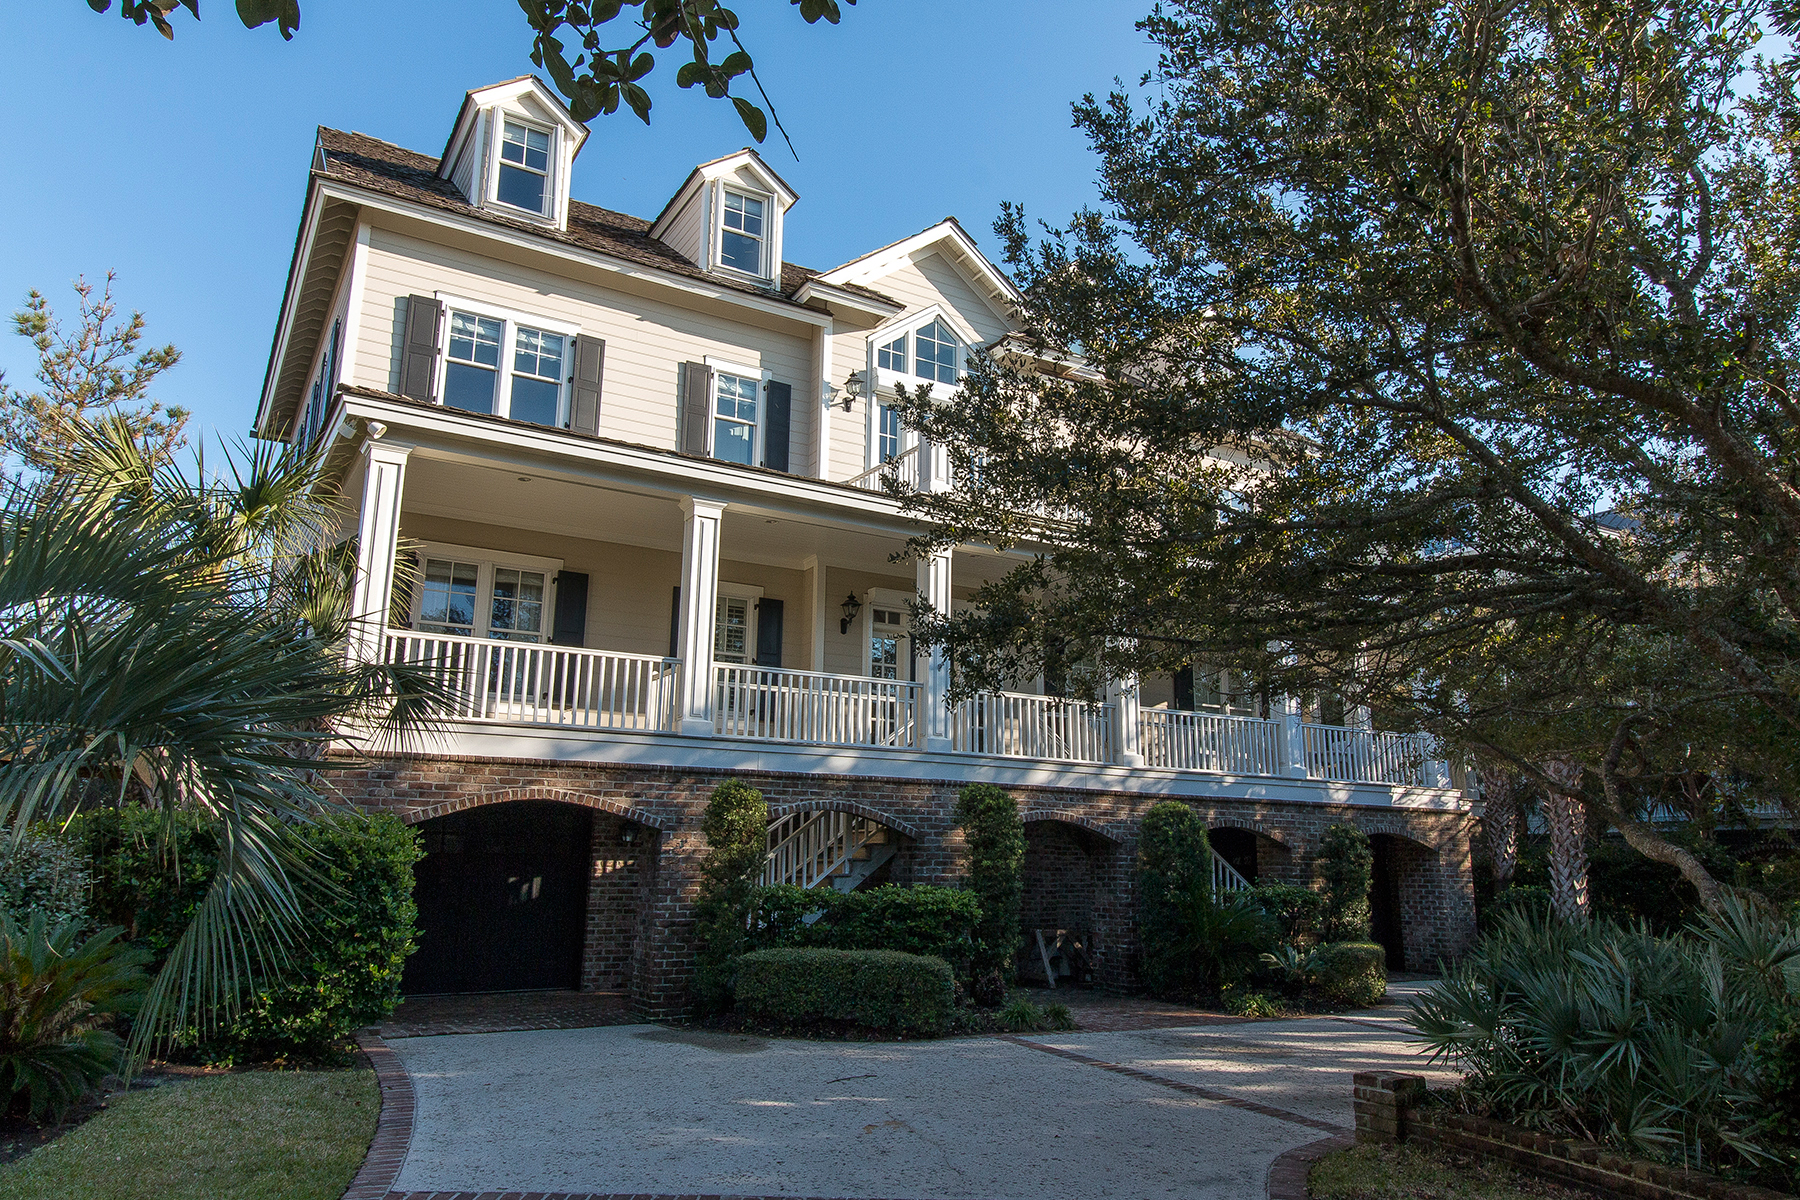 Single Family Home for Sale at 727 Beach Bridge Road Pawleys Island, South Carolina, 29585 United States